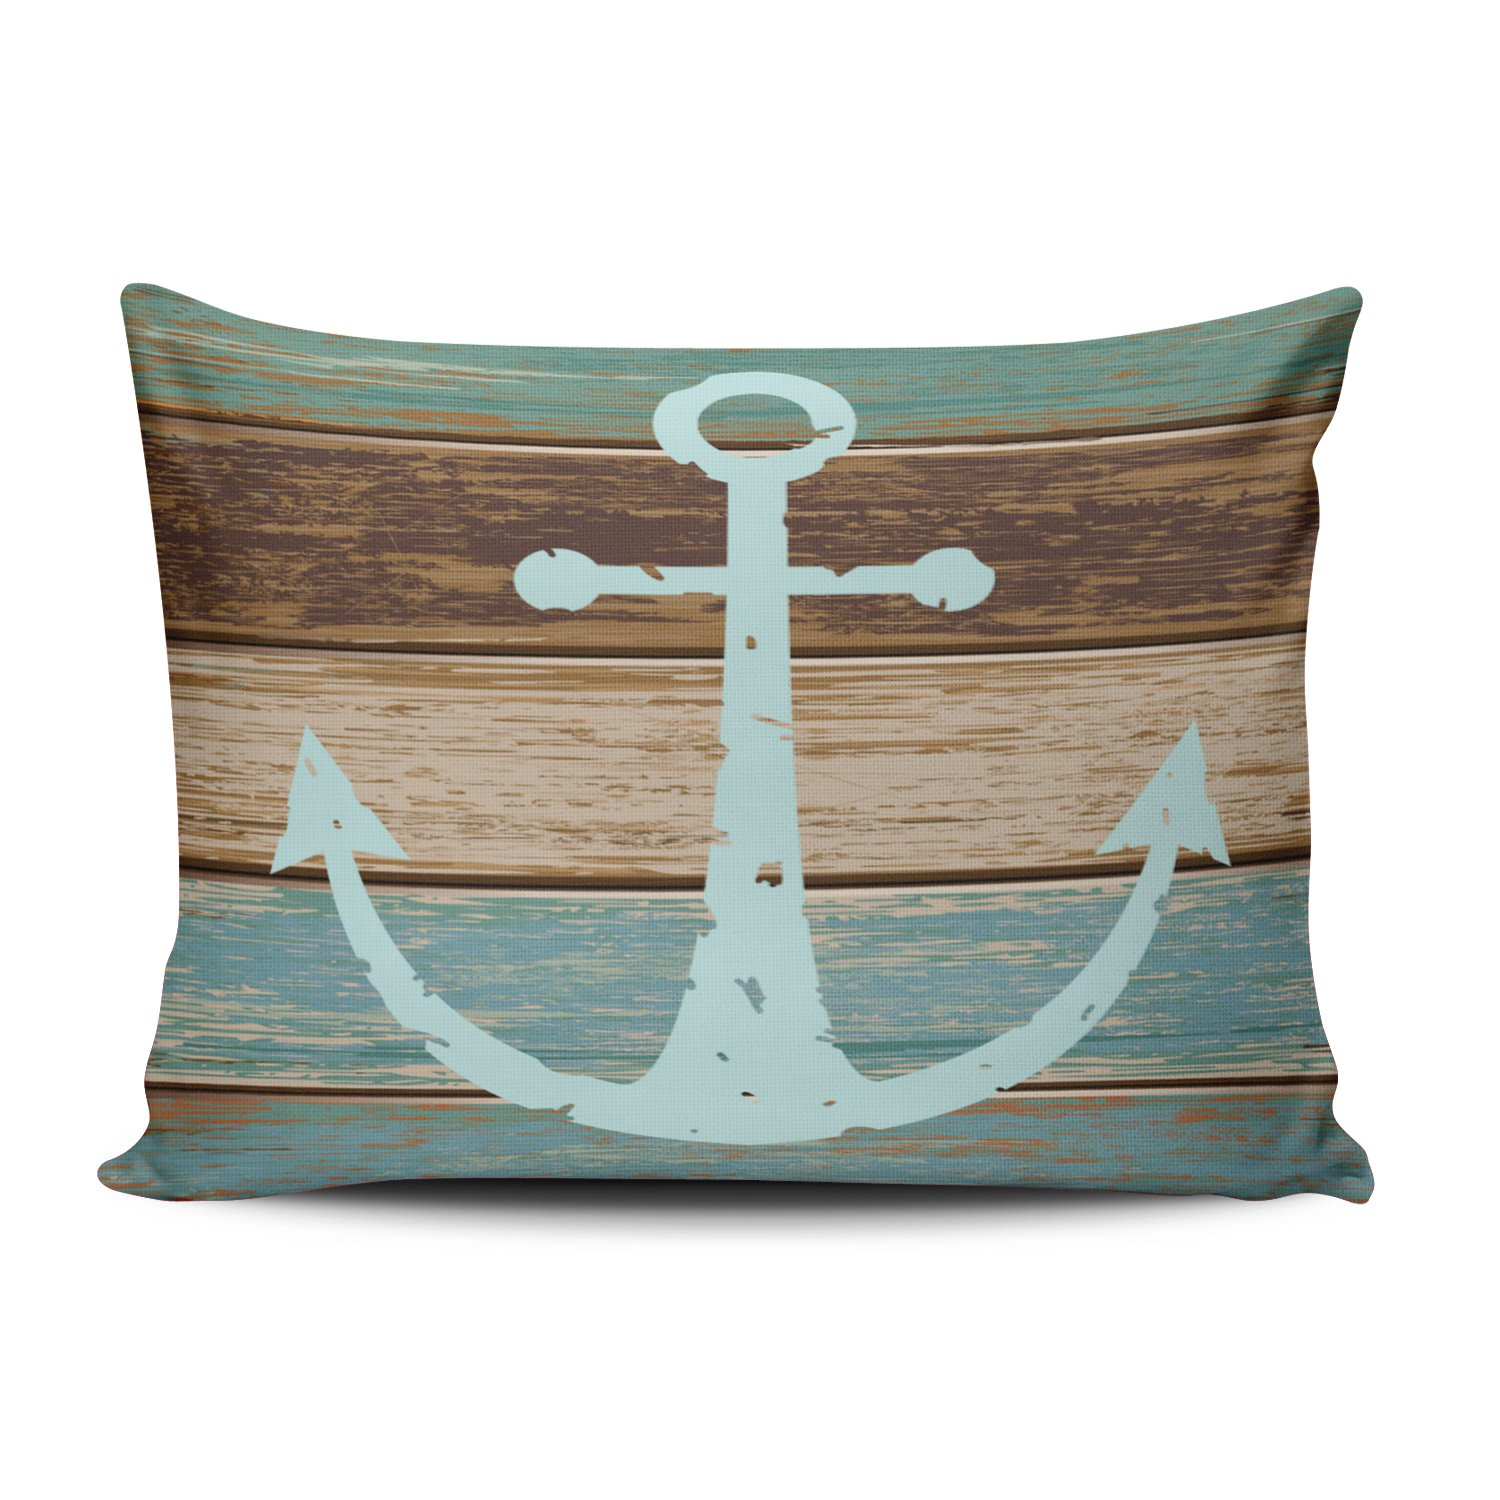 Fanaing Bedroom Custom D¨¦cor Nautical Anchor Weathered Wood Coastal Themed Pillowcase Soft Zippered Brown Aqua Mint and Turquoise Pillow Case Fashion Design One-Side Printed Standard 20x26 Inches by Fanaing (Image #1)